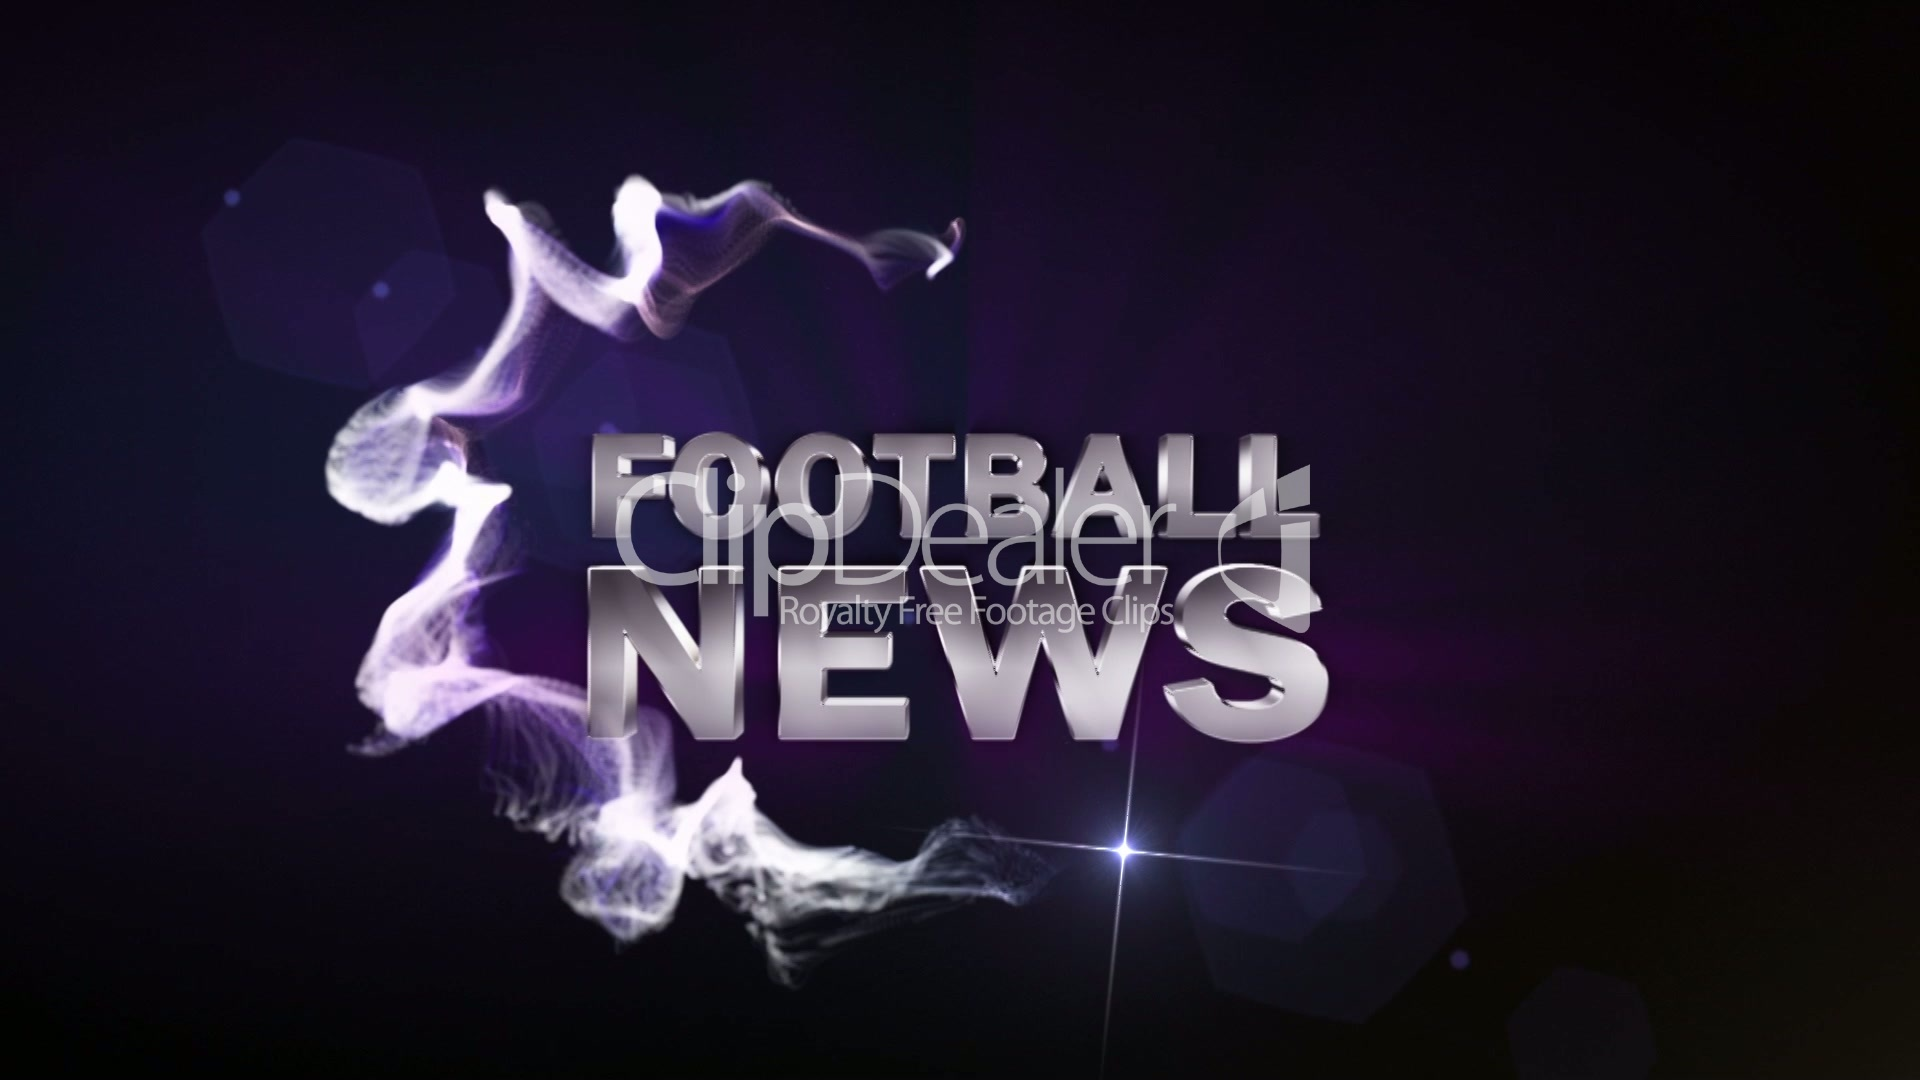 FOOTBALL NEWS Blue (2 variations) - HD1080: Royalty-free ... Soccer News